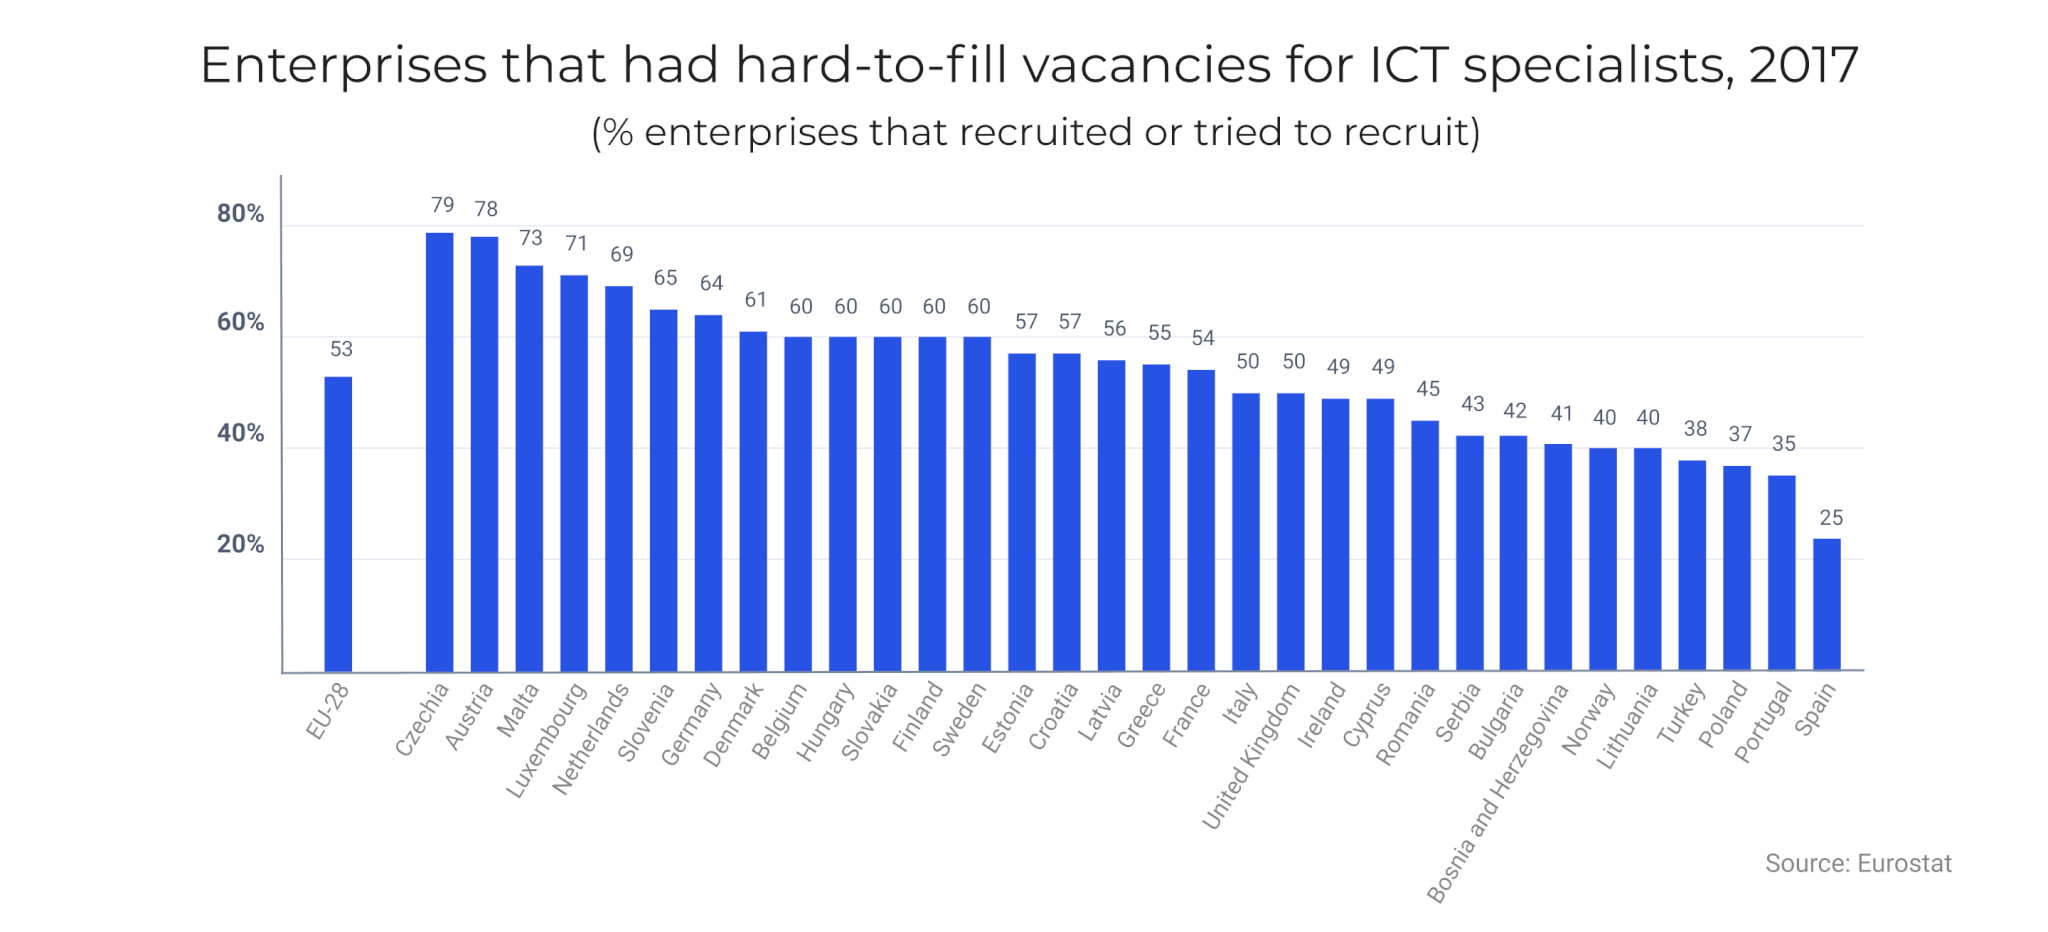 Enterprises that had hard-to-fill vacancies for ICT specialists, 2017